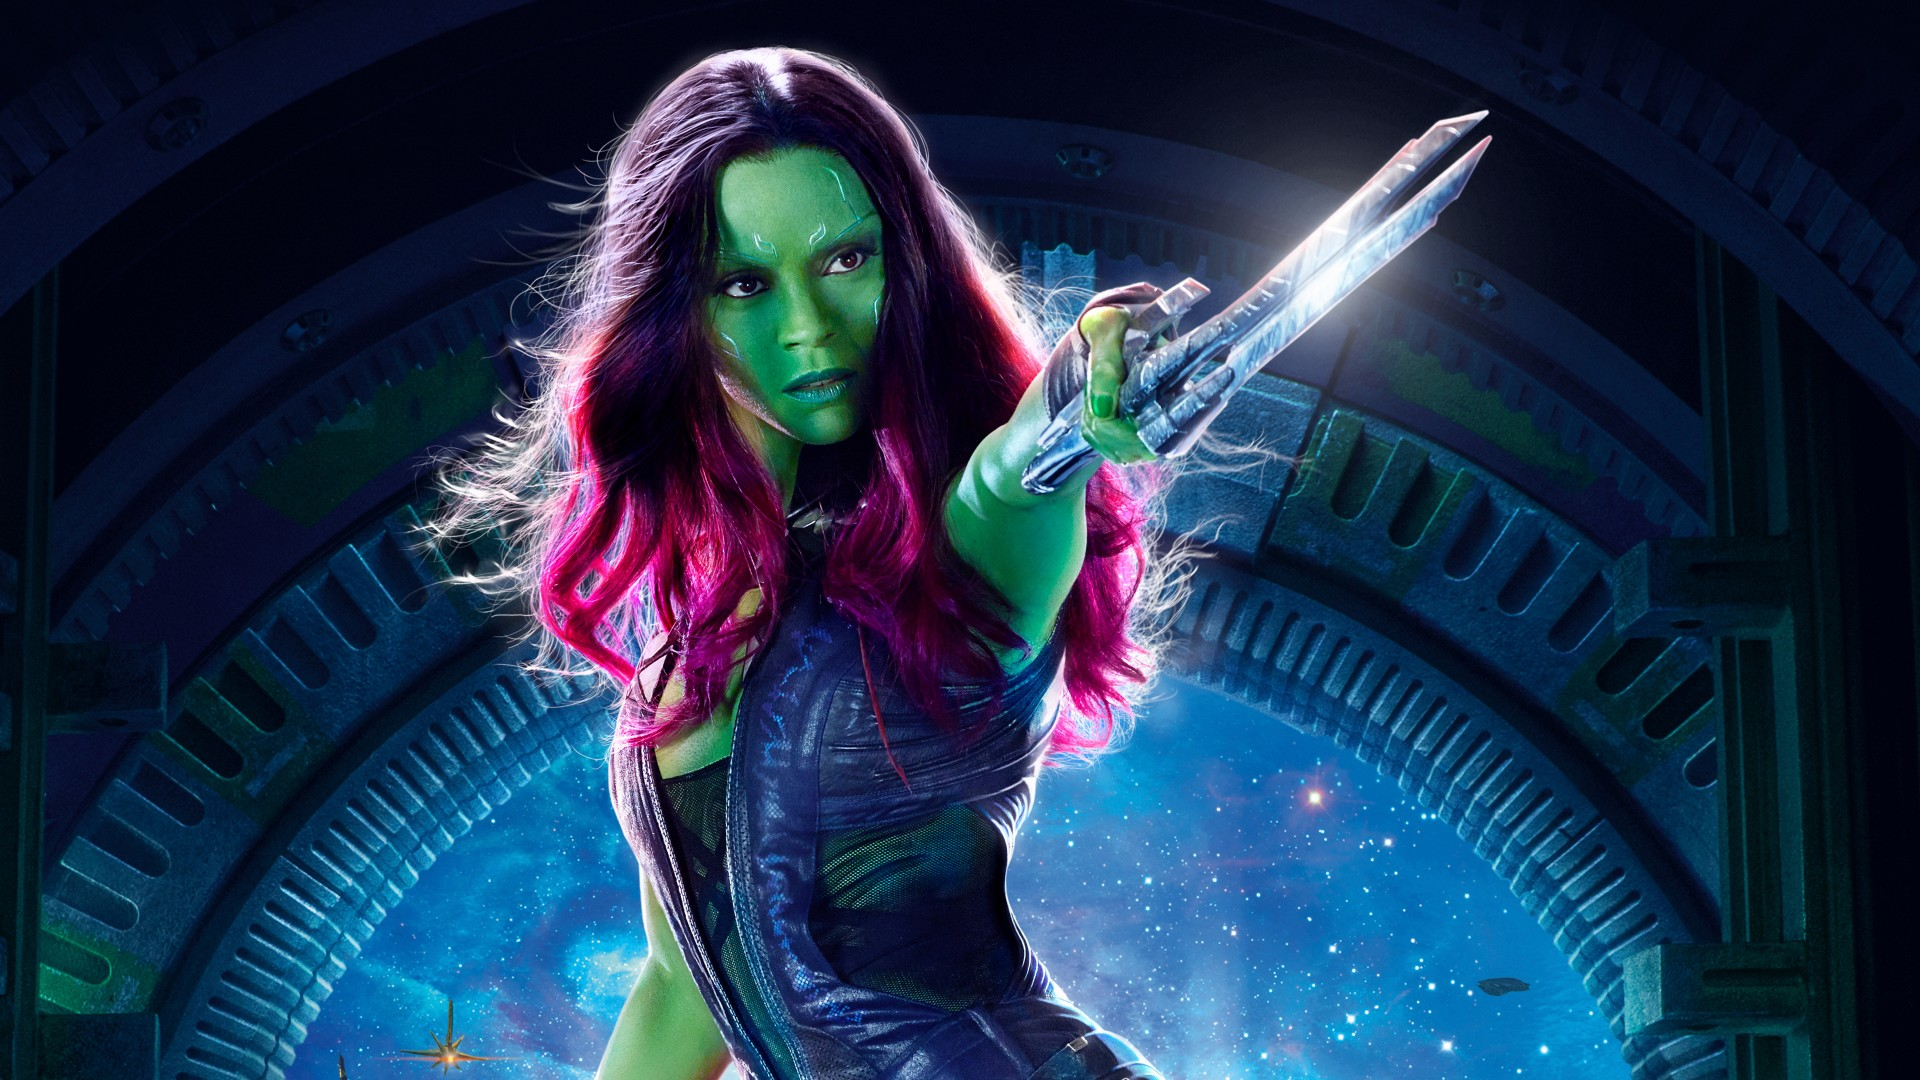 3d Galaxy Wallpaper Widescreen Gamora Guardians Of The Galaxy Vol 2 4k Hd Wallpapers Hd